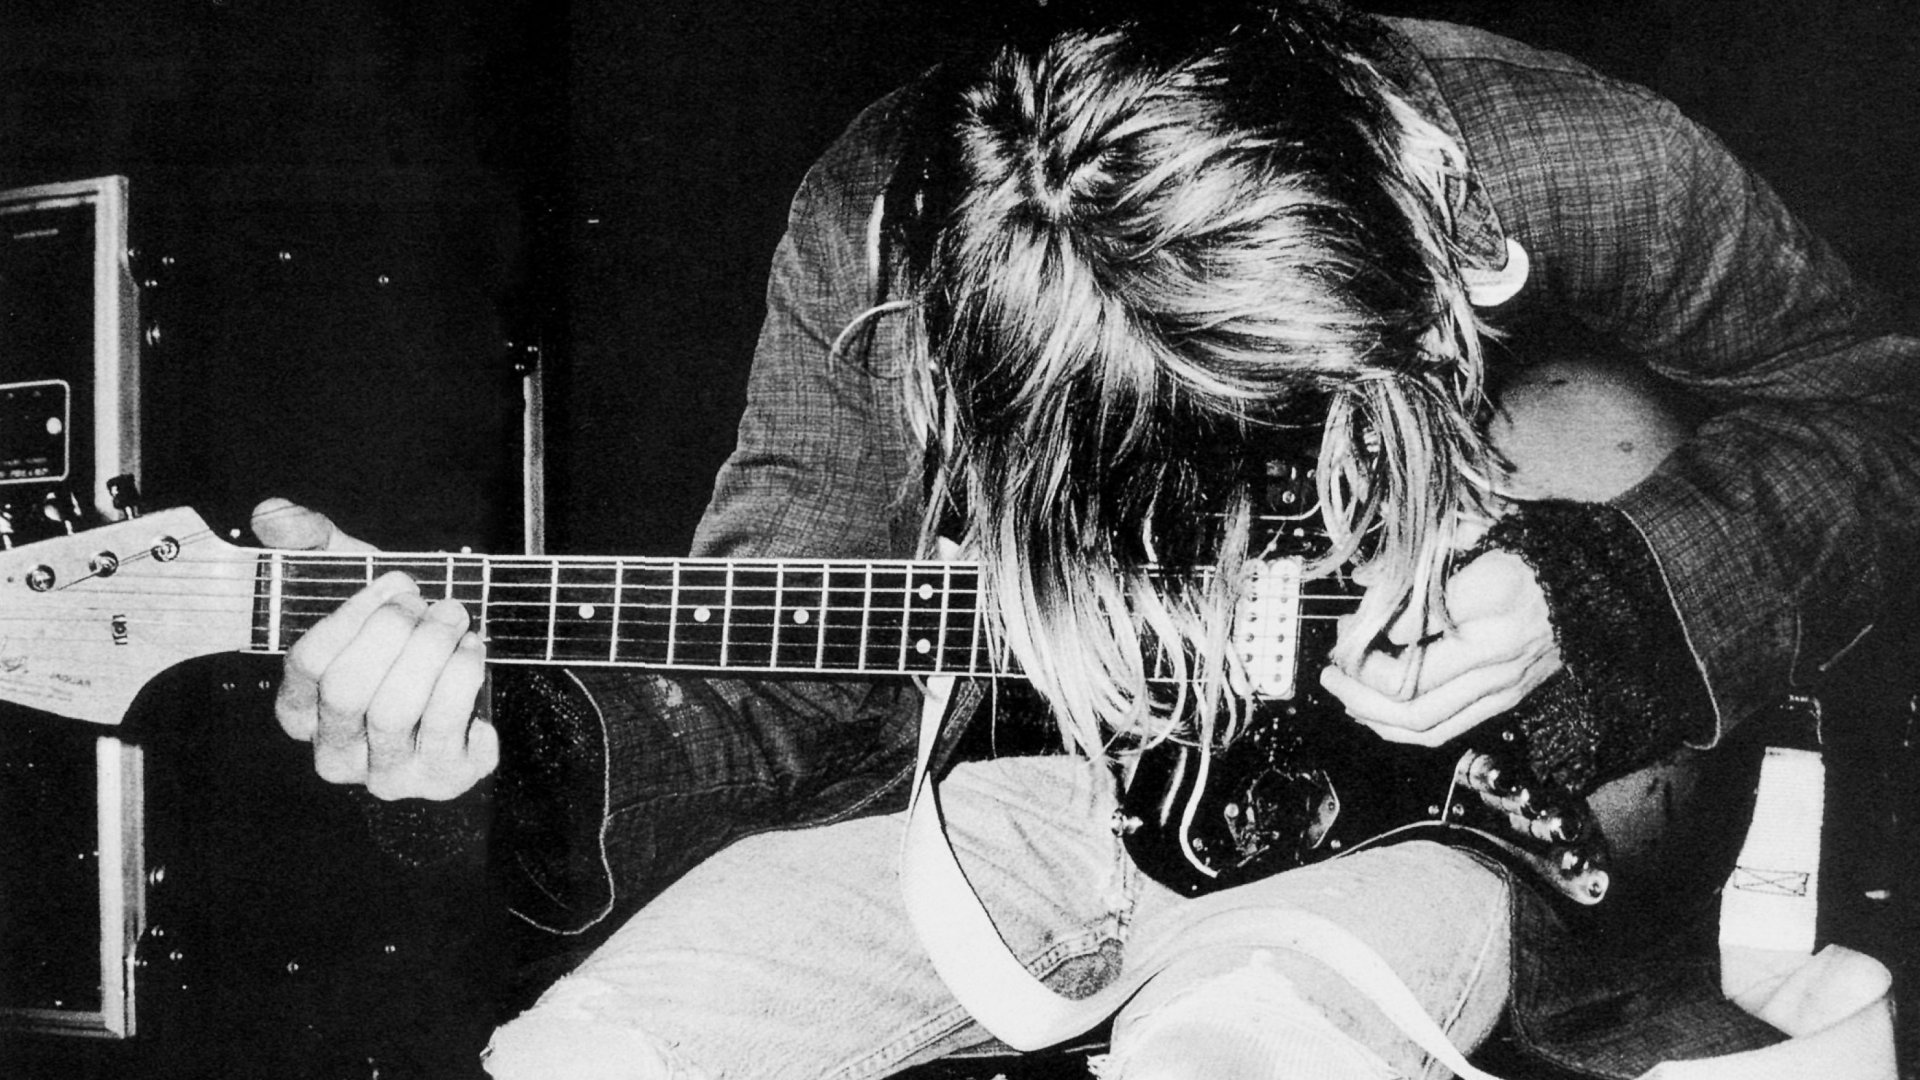 Wallpaperwiki Music Nirvana Kurt Cobain Images 1920x1080 PIC